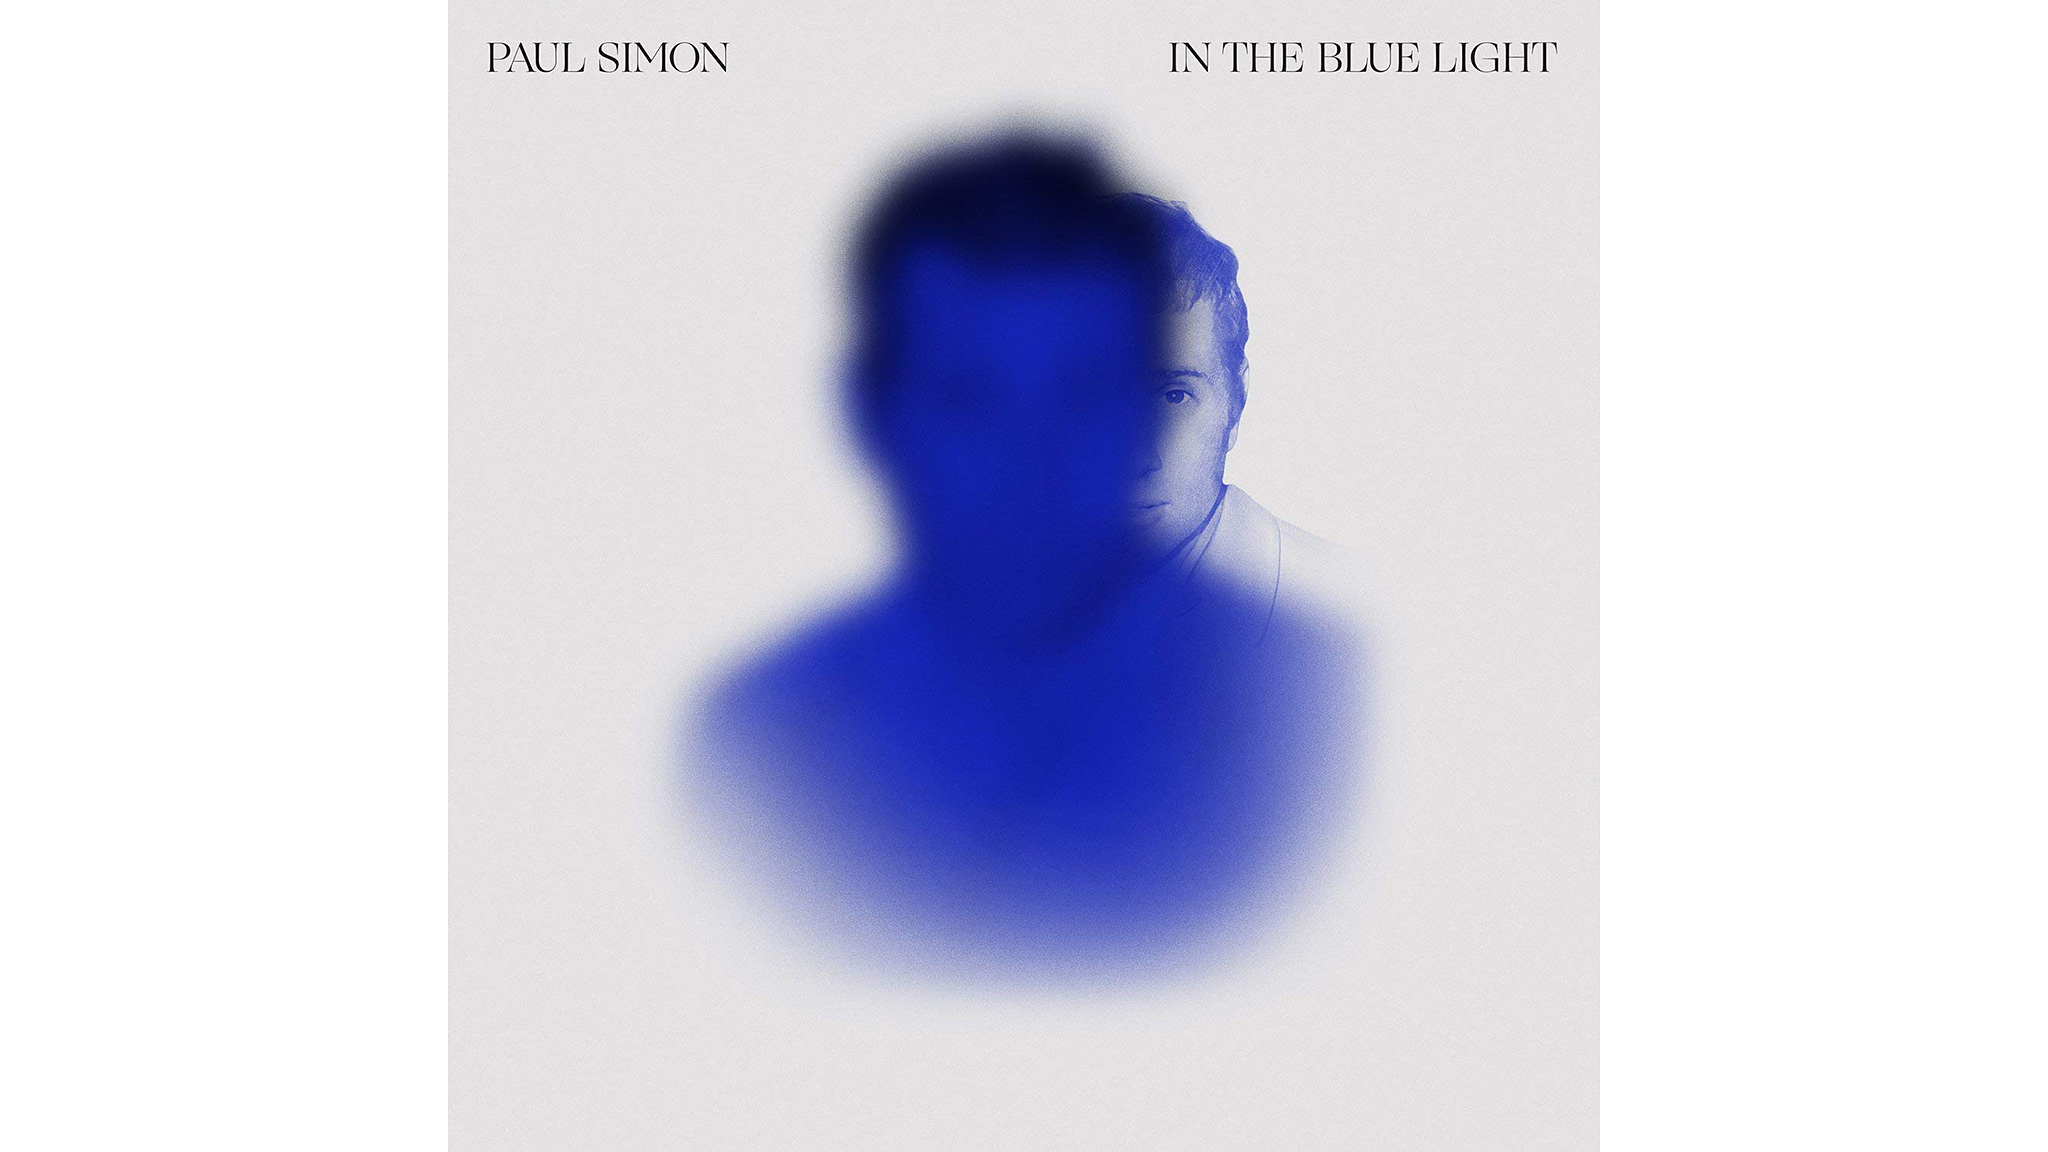 Paul Simon: In the Blue Light — perfected reworkings